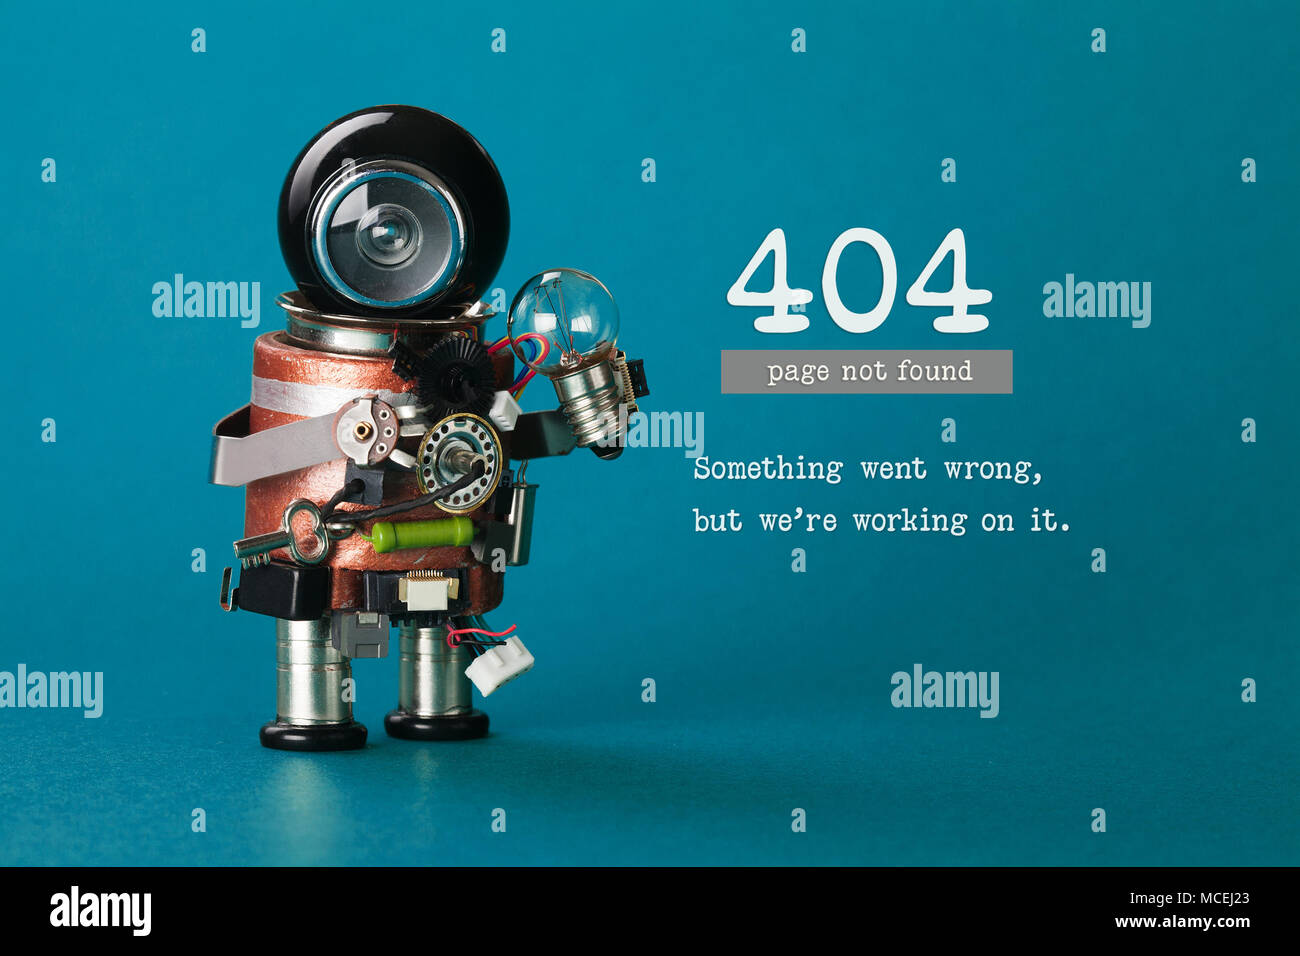 404 error web page not found. Futuristic robotic toy mechanism, black helmet head, light bulb in hand. Blue background. Text something went wrong but we are working on it. - Stock Image